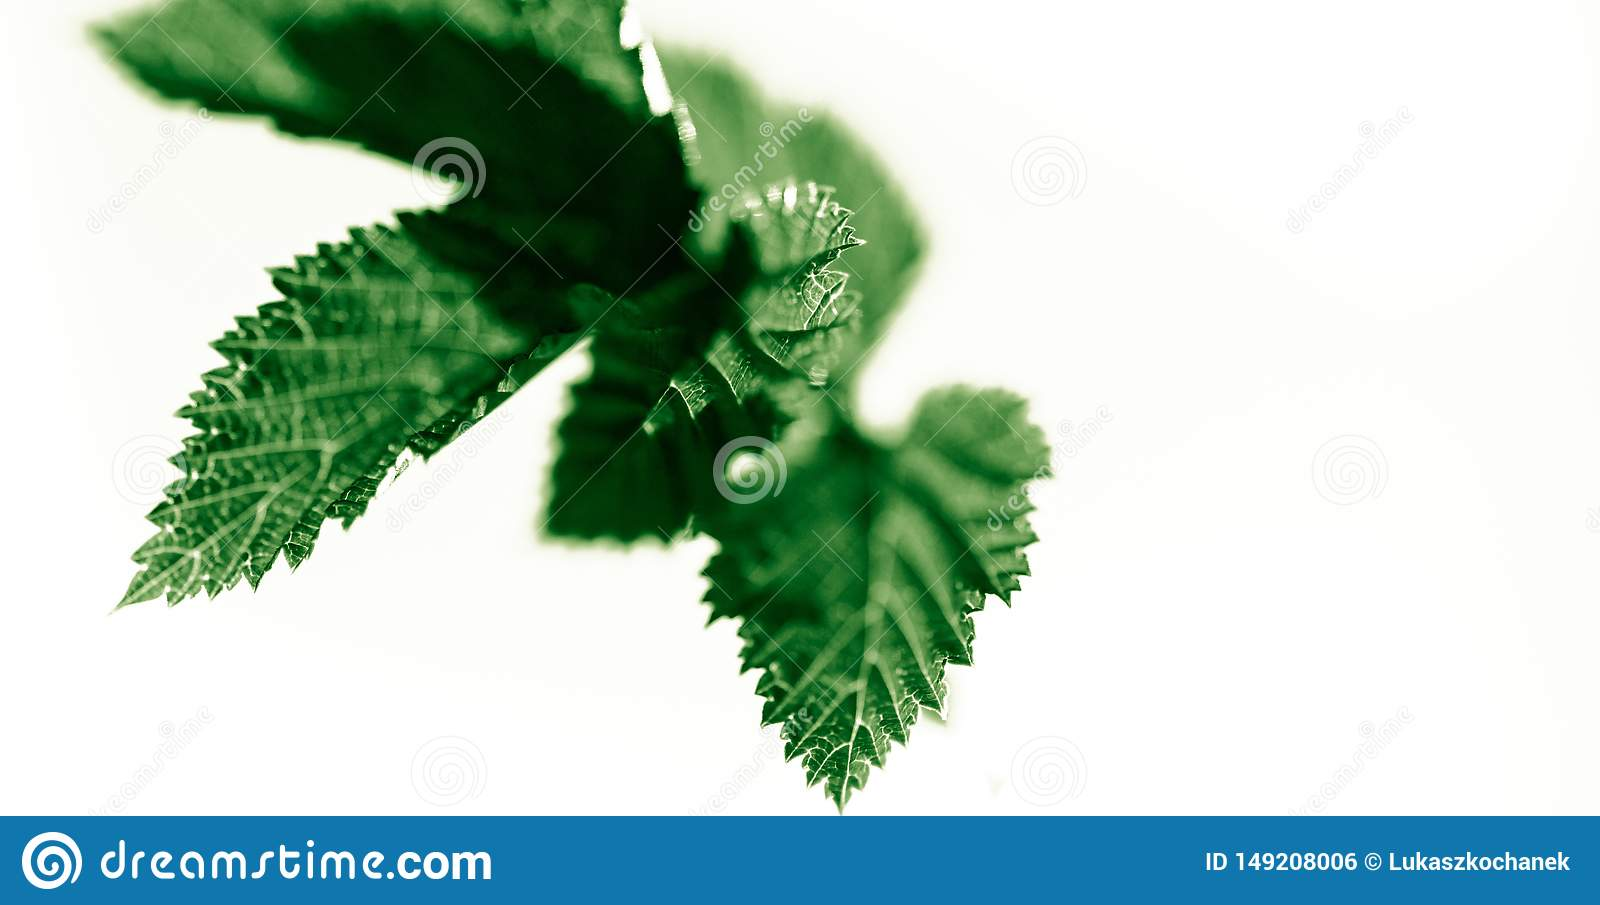 Fresh light green leaves isolated on white, abstract background for spring summer concept